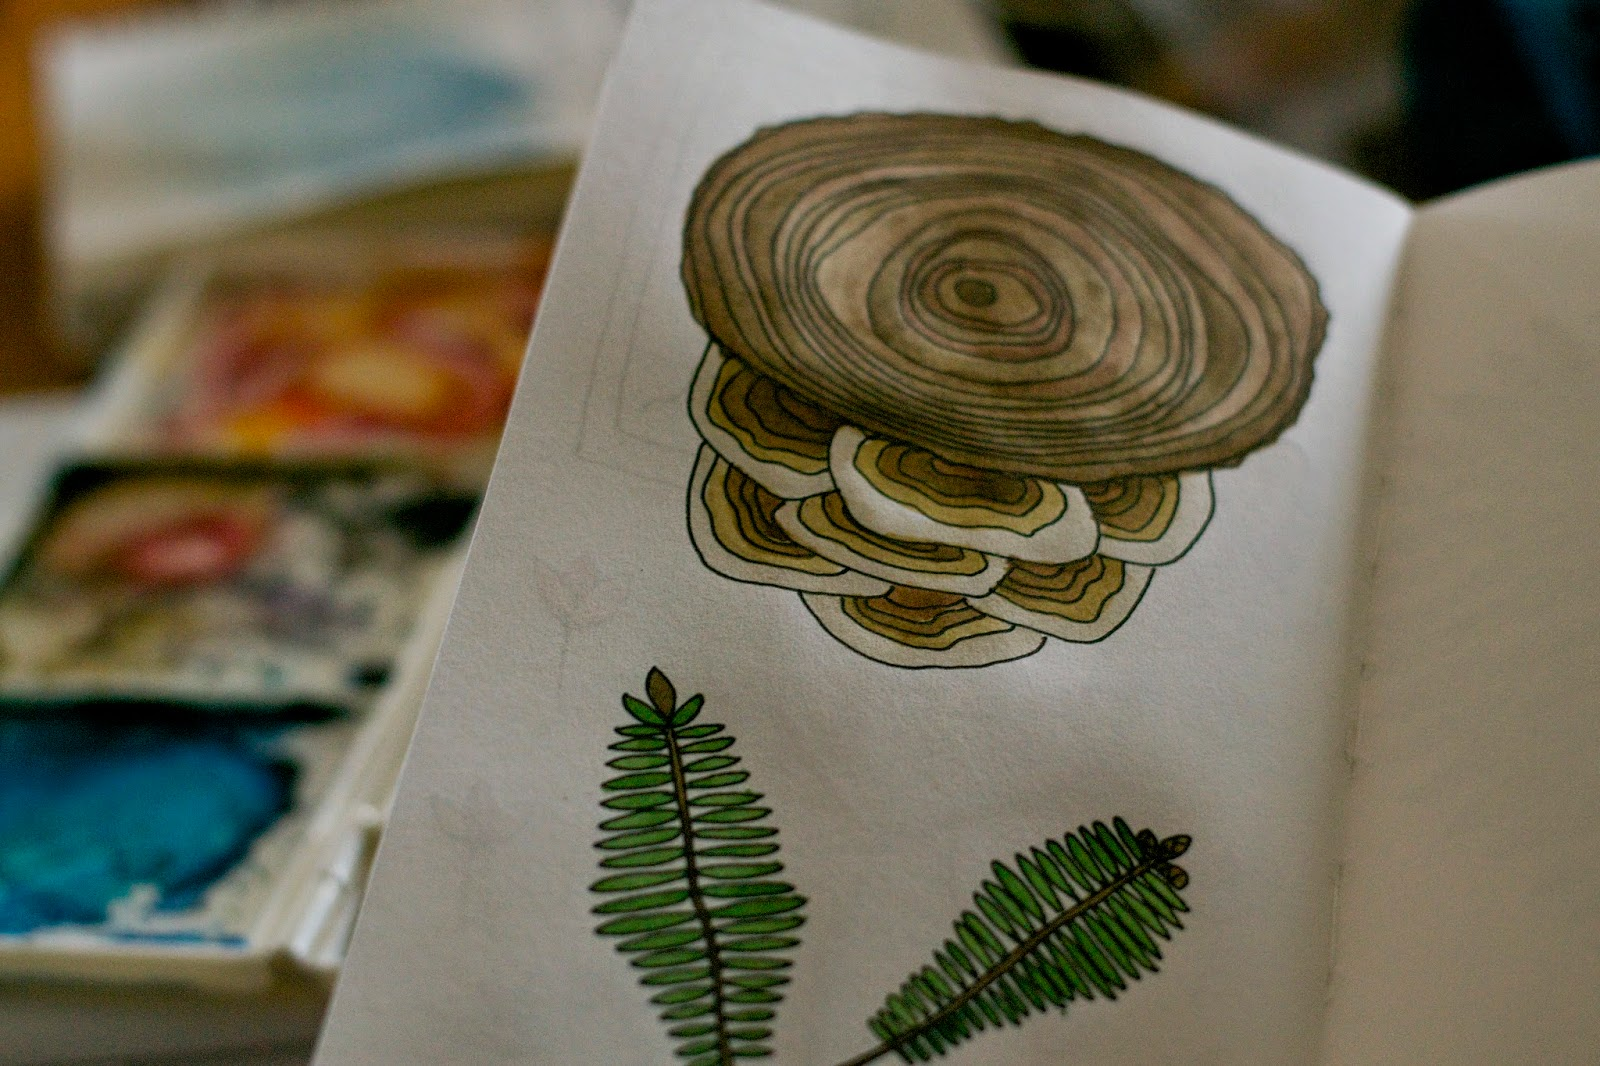 Sketchbook peek: Nature studies from daily walks. Mushrooms growing on a stump and pine branches.